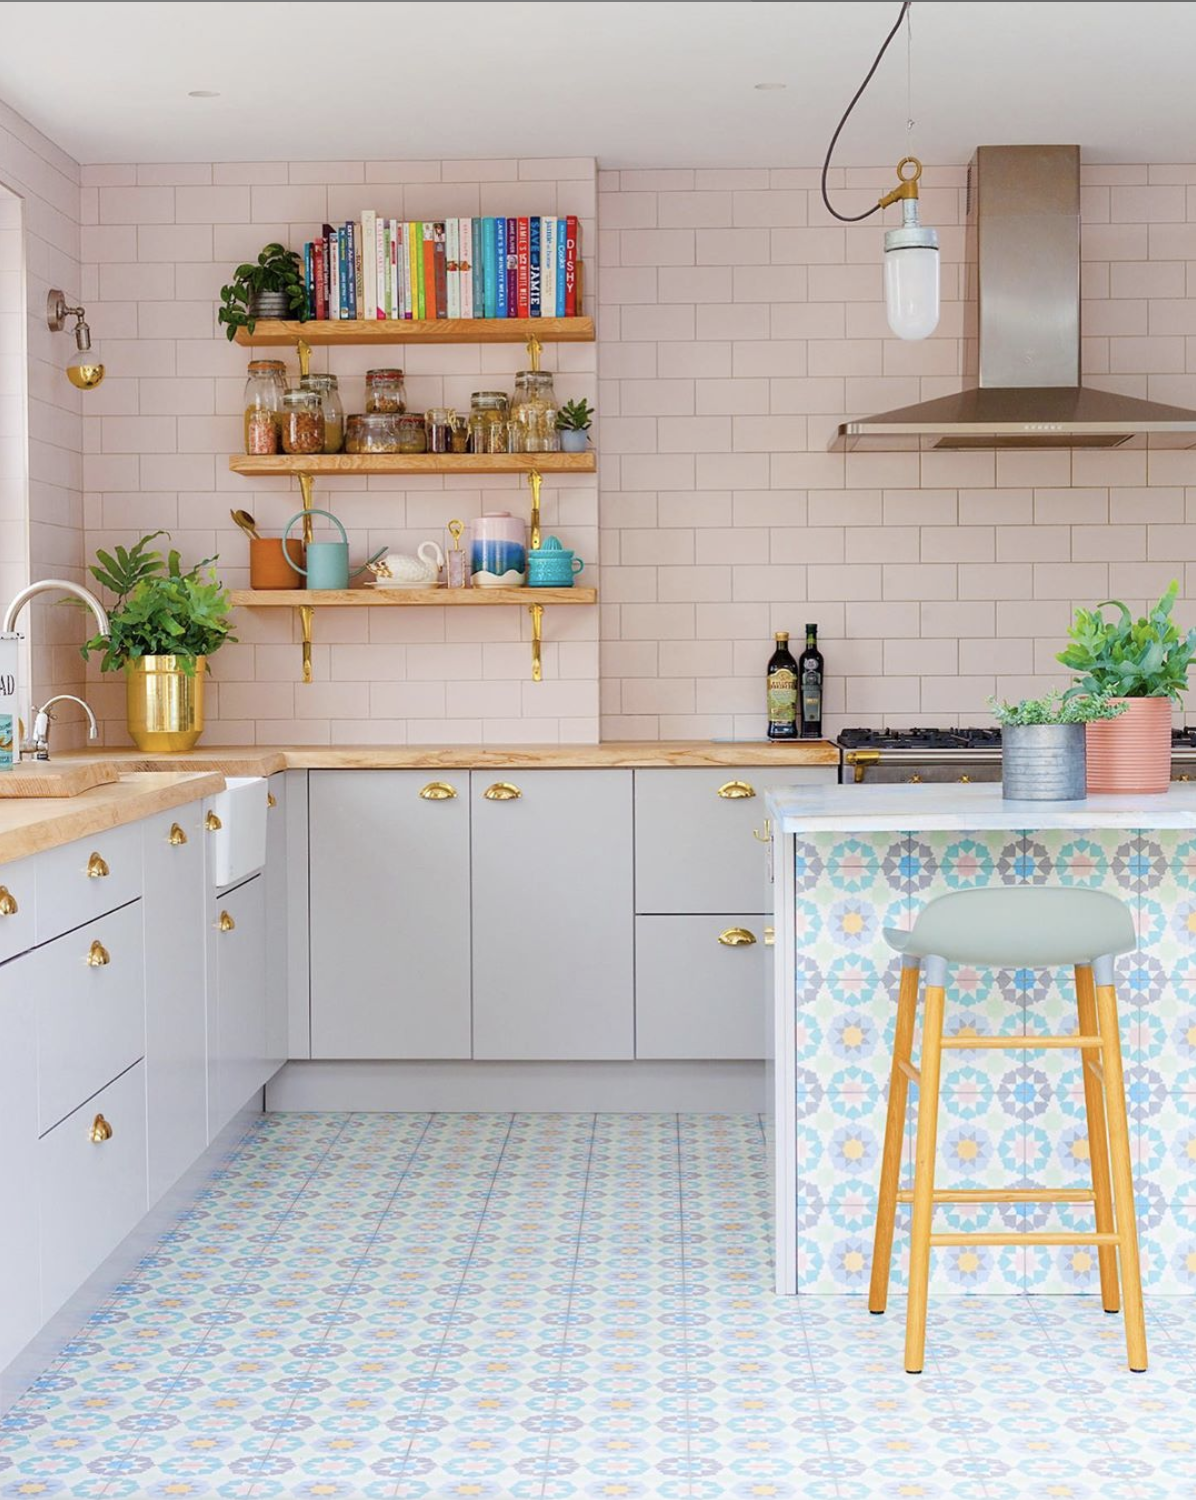 The joinery hardware in this kitchen just make this space! Image source @2lgstudio - Instagram